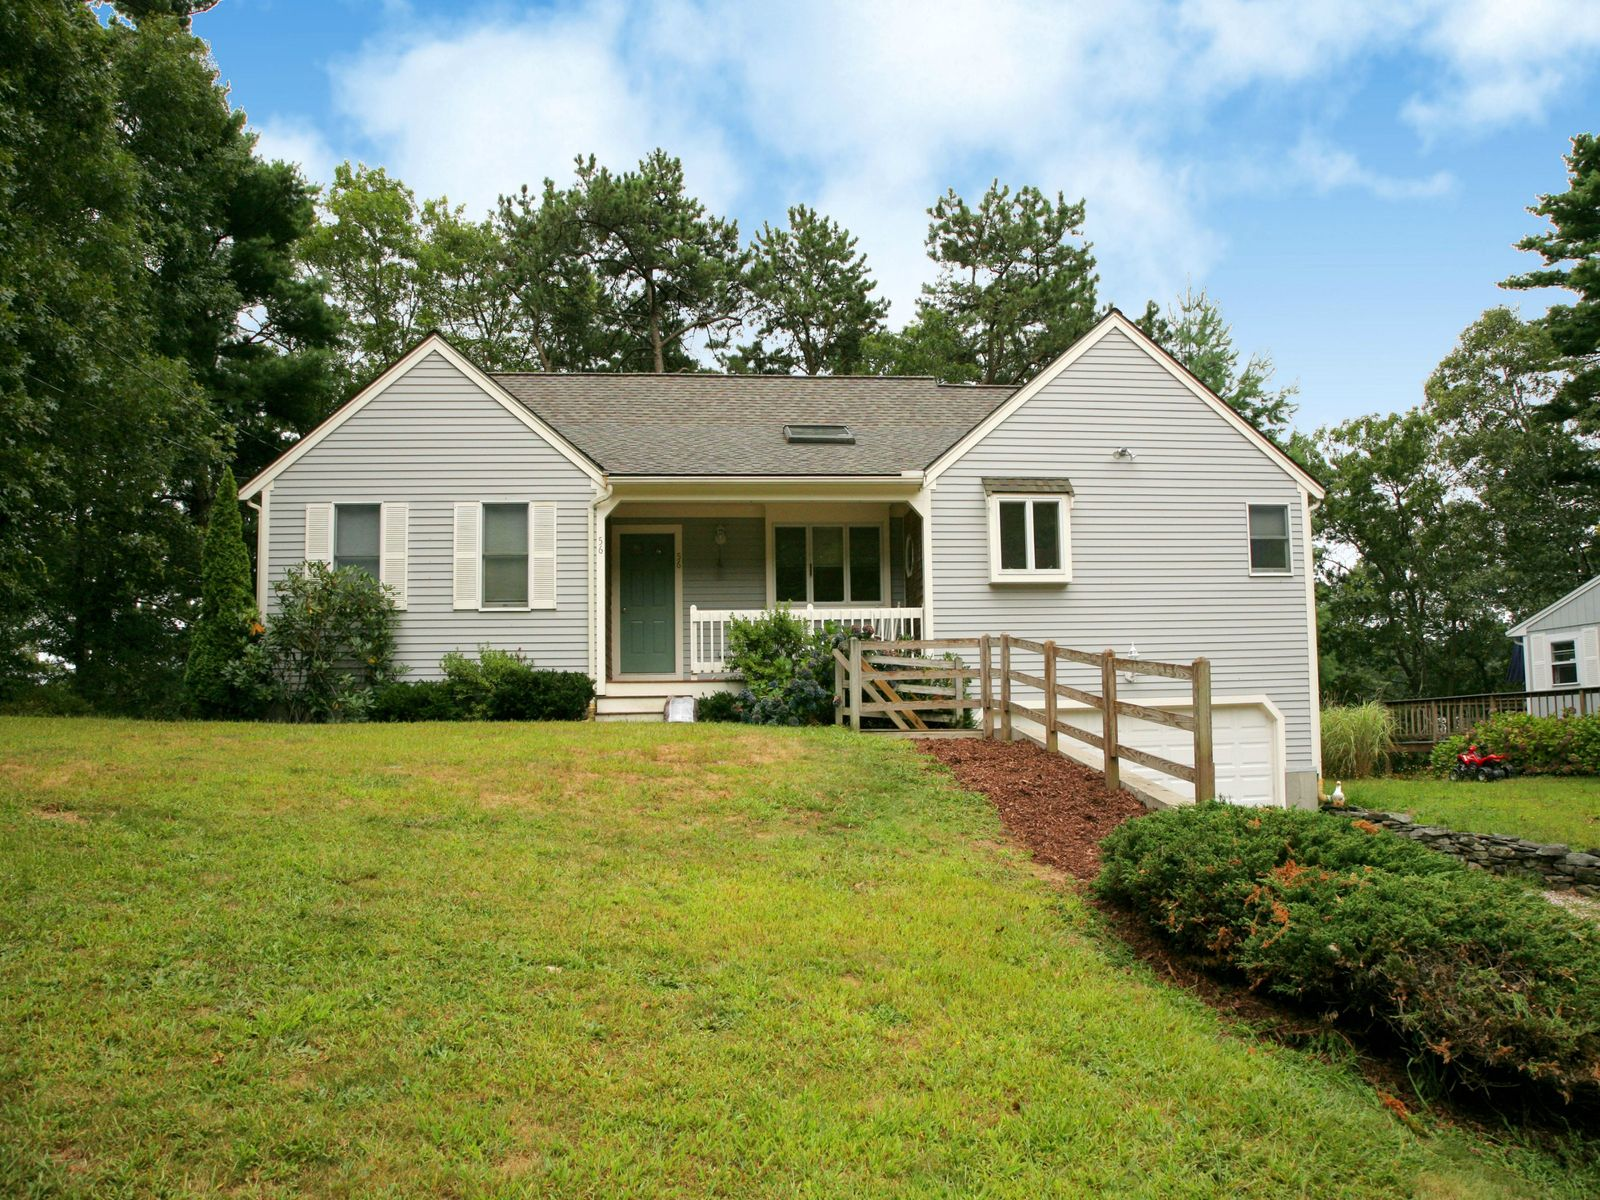 Jenkins Pond Waterfront, East Falmouth MA Single Family Home - Cape Cod Real Estate